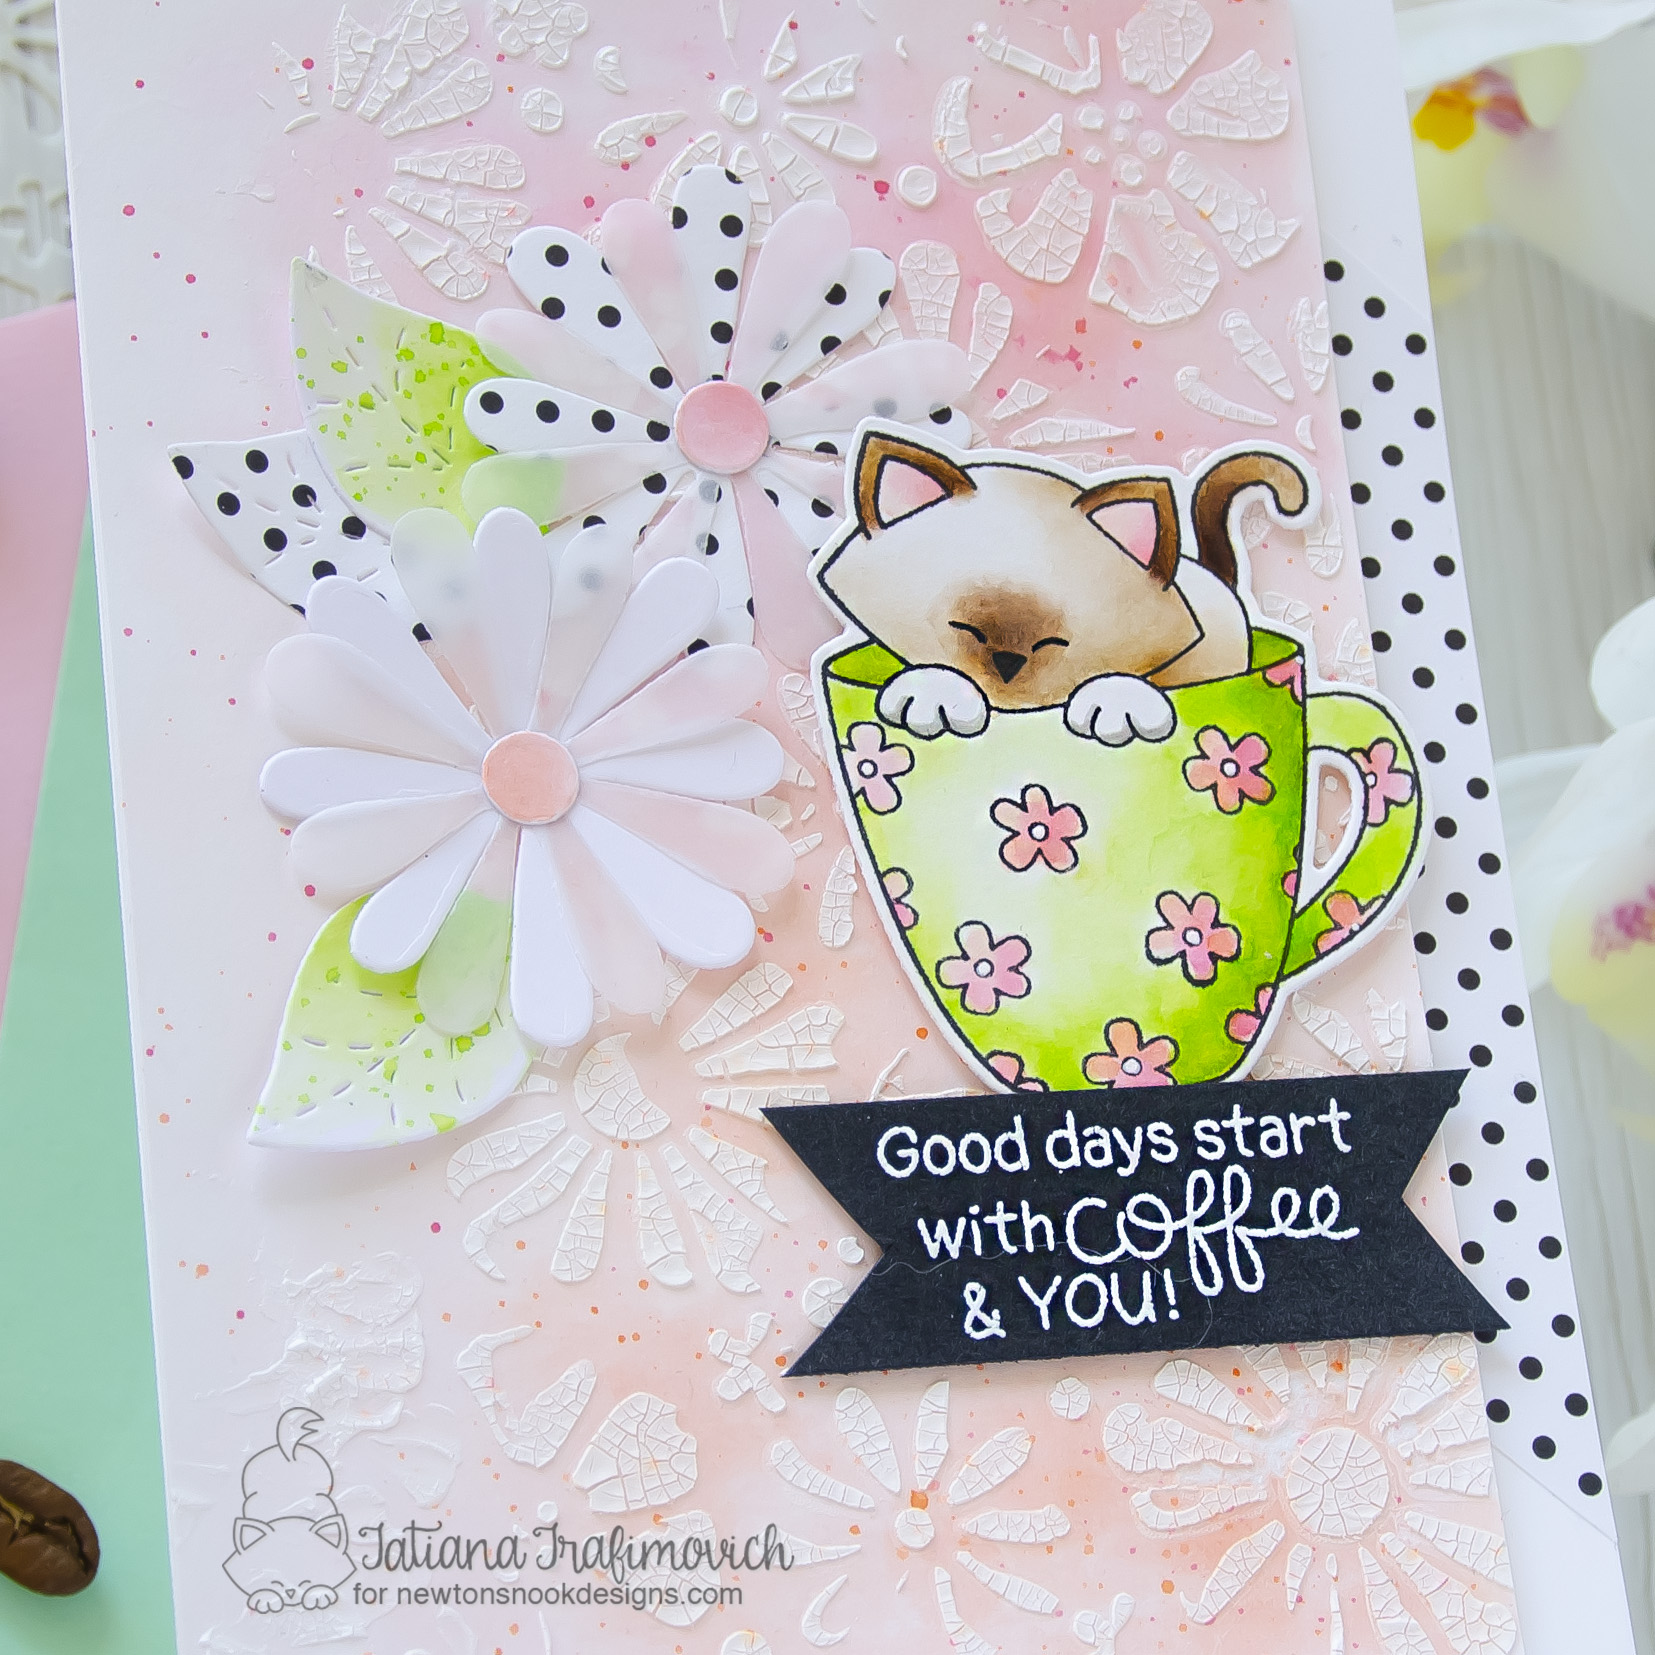 Good Days Start With COFFEE & You #handmade card by Tatiana Trafimovich #tatianacraftandart - Newton's Mug stamp set by Newton's Nook Designs #newtonsnook